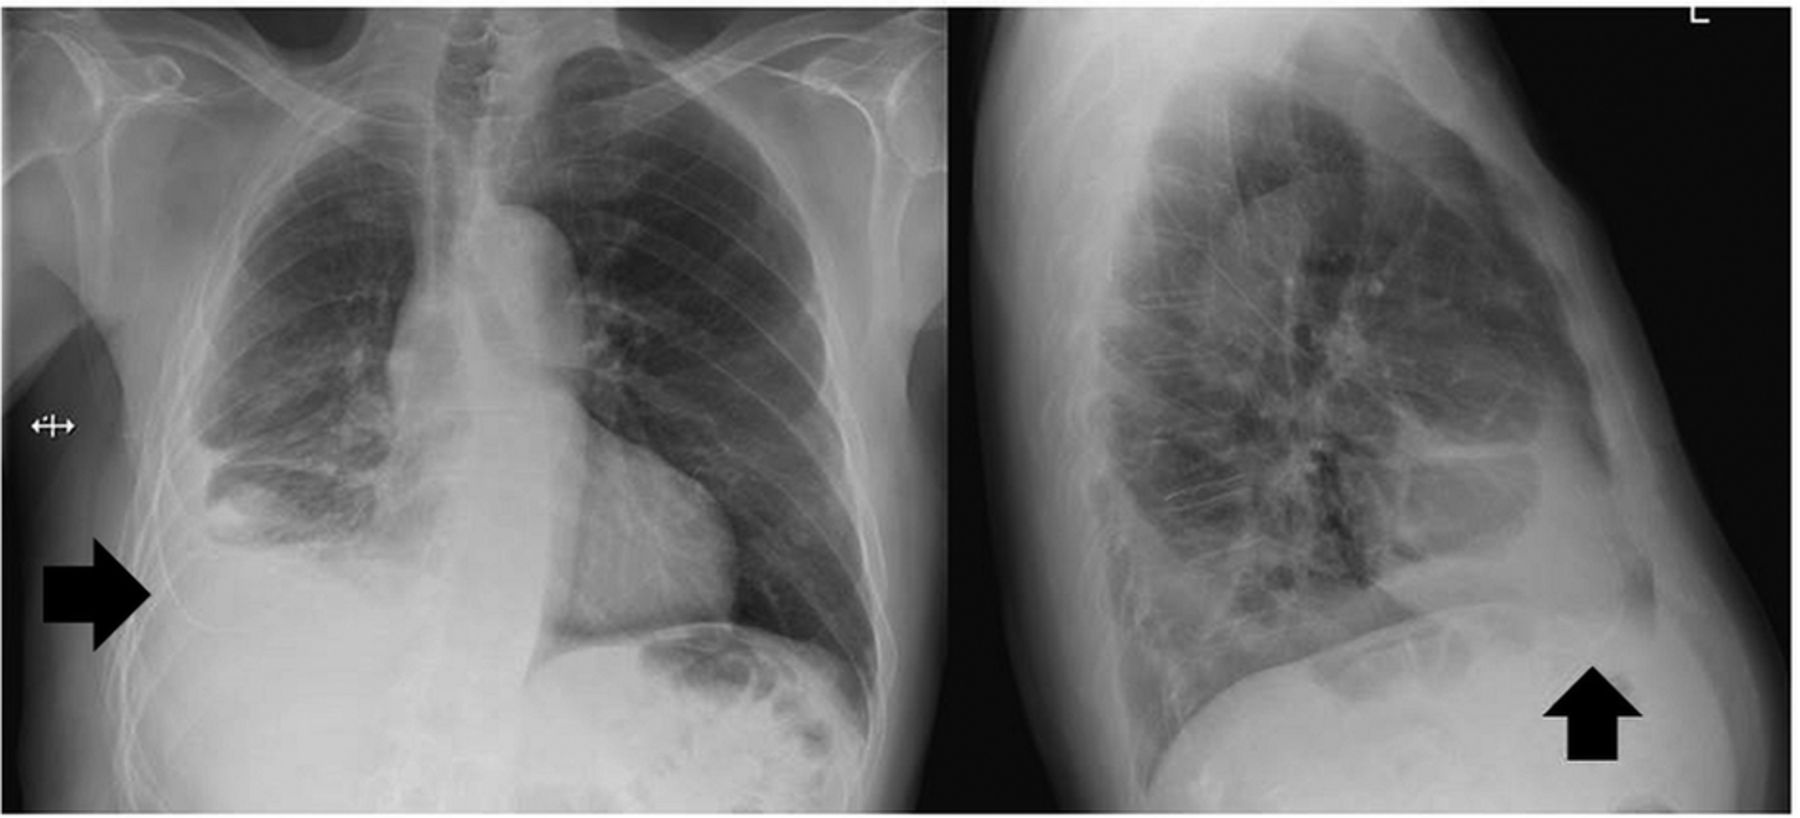 Complications of indwelling pleural catheter use and their